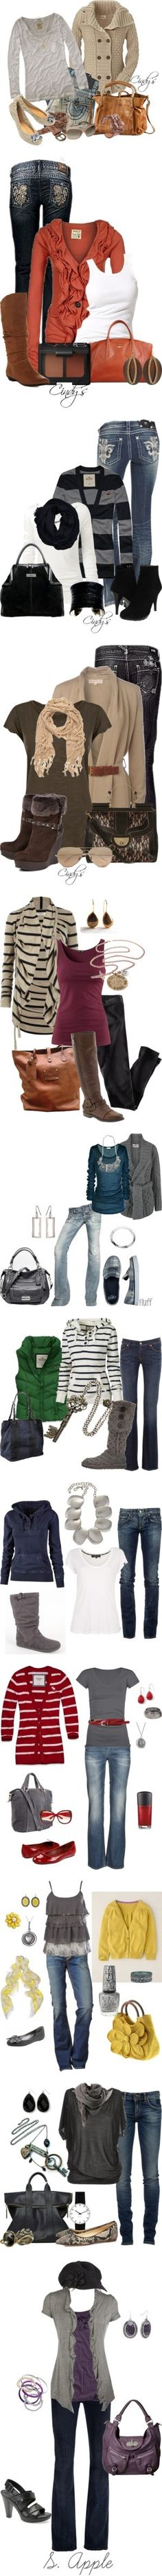 """Fall Fashion"" by riddlechick ❤ liked on Polyvore"